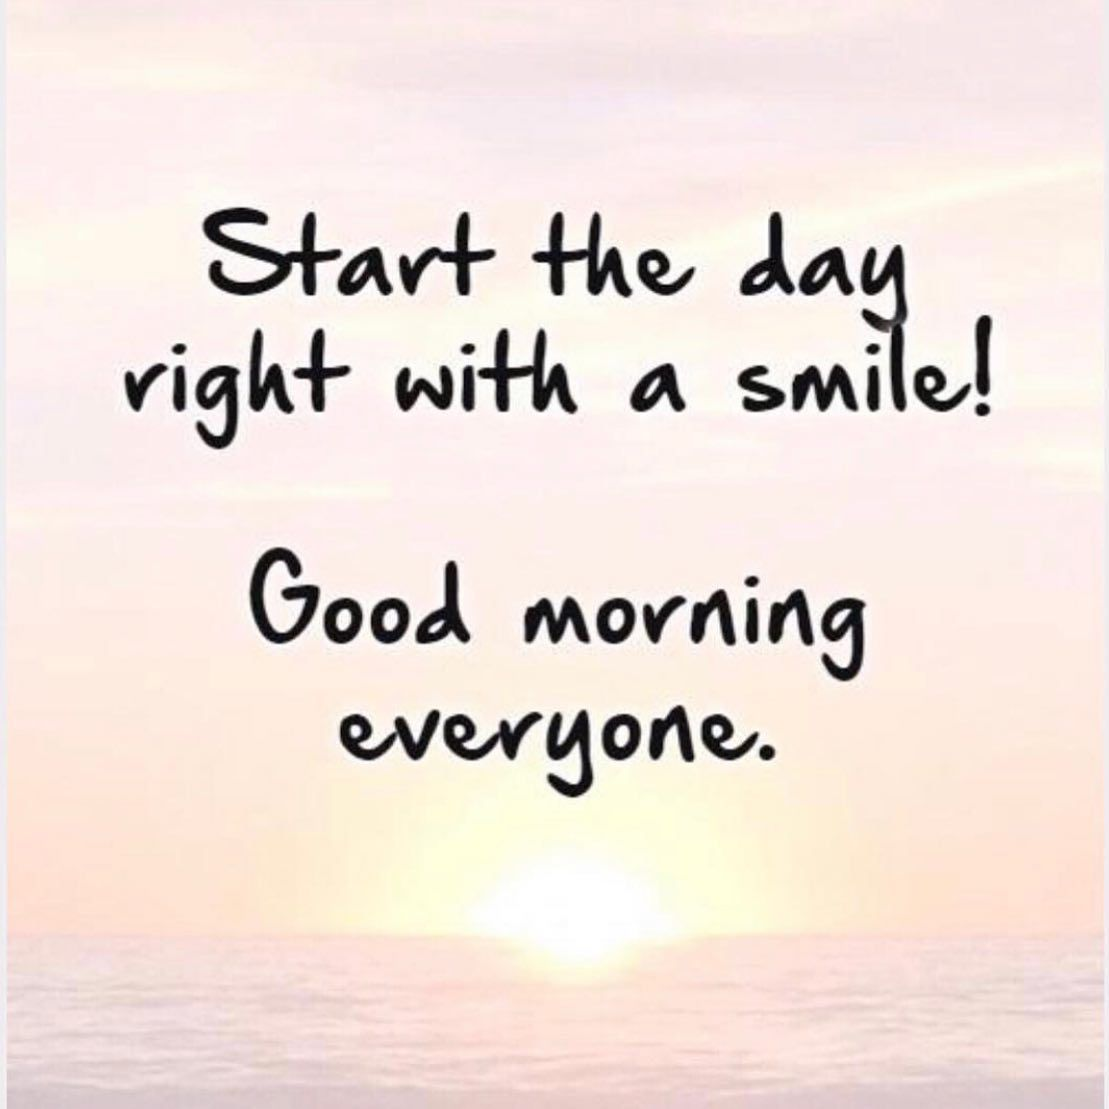 Start The Day Right With A Smile Good Morning Everyone Fun Cute Me Goodmorning P Morning Quotes For Friends Good Day Quotes Good Morning Quotes